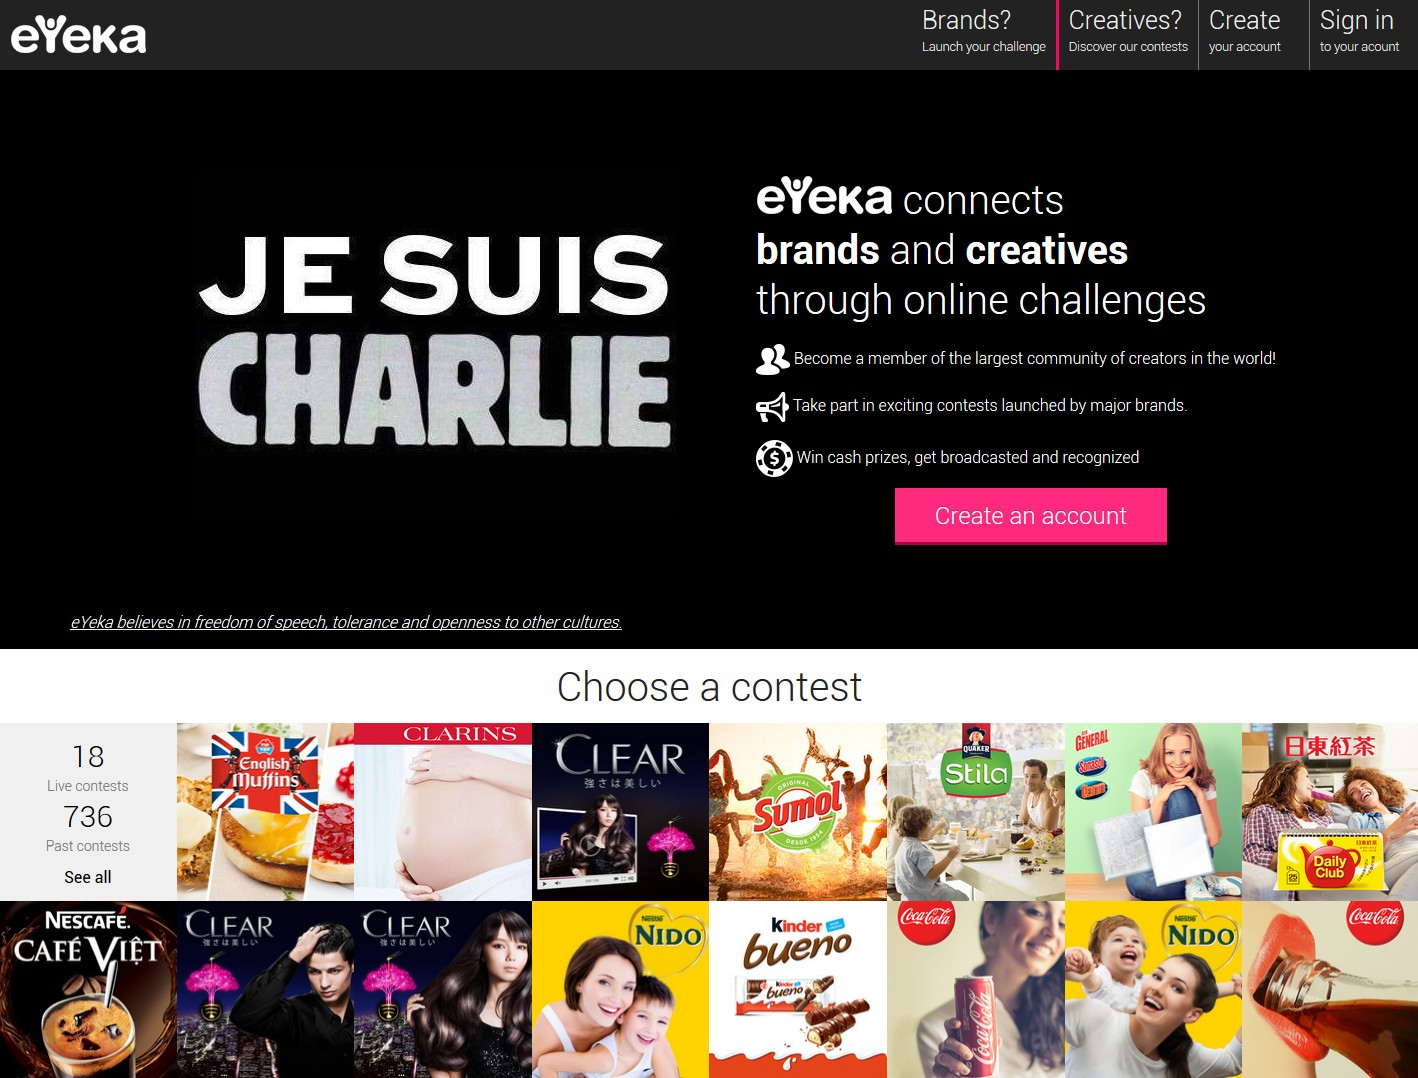 The #JeSuisCharlie-themed eYeka homepage in January